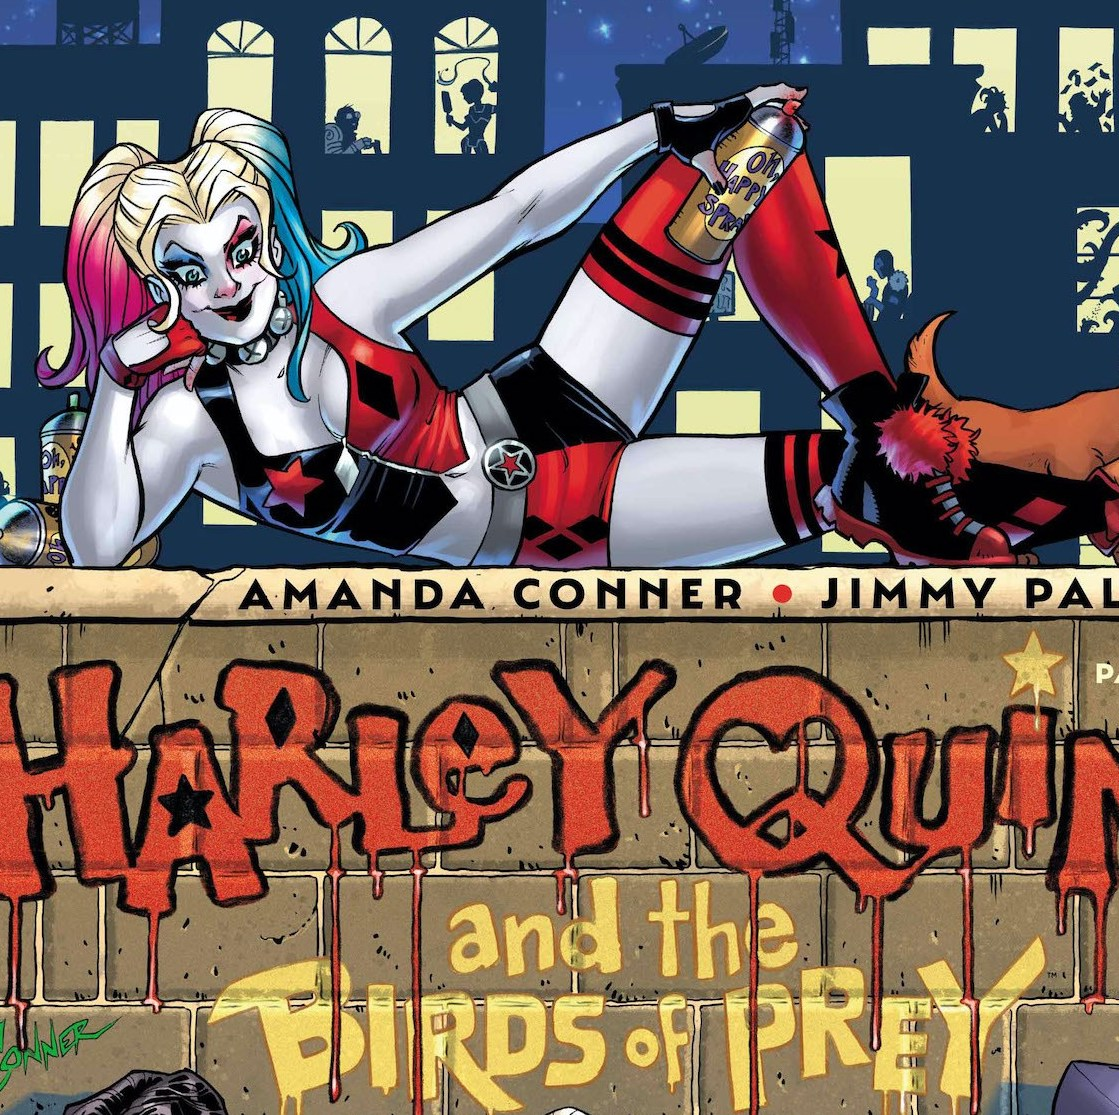 Harley Quinn & The Birds of Prey #1 Review